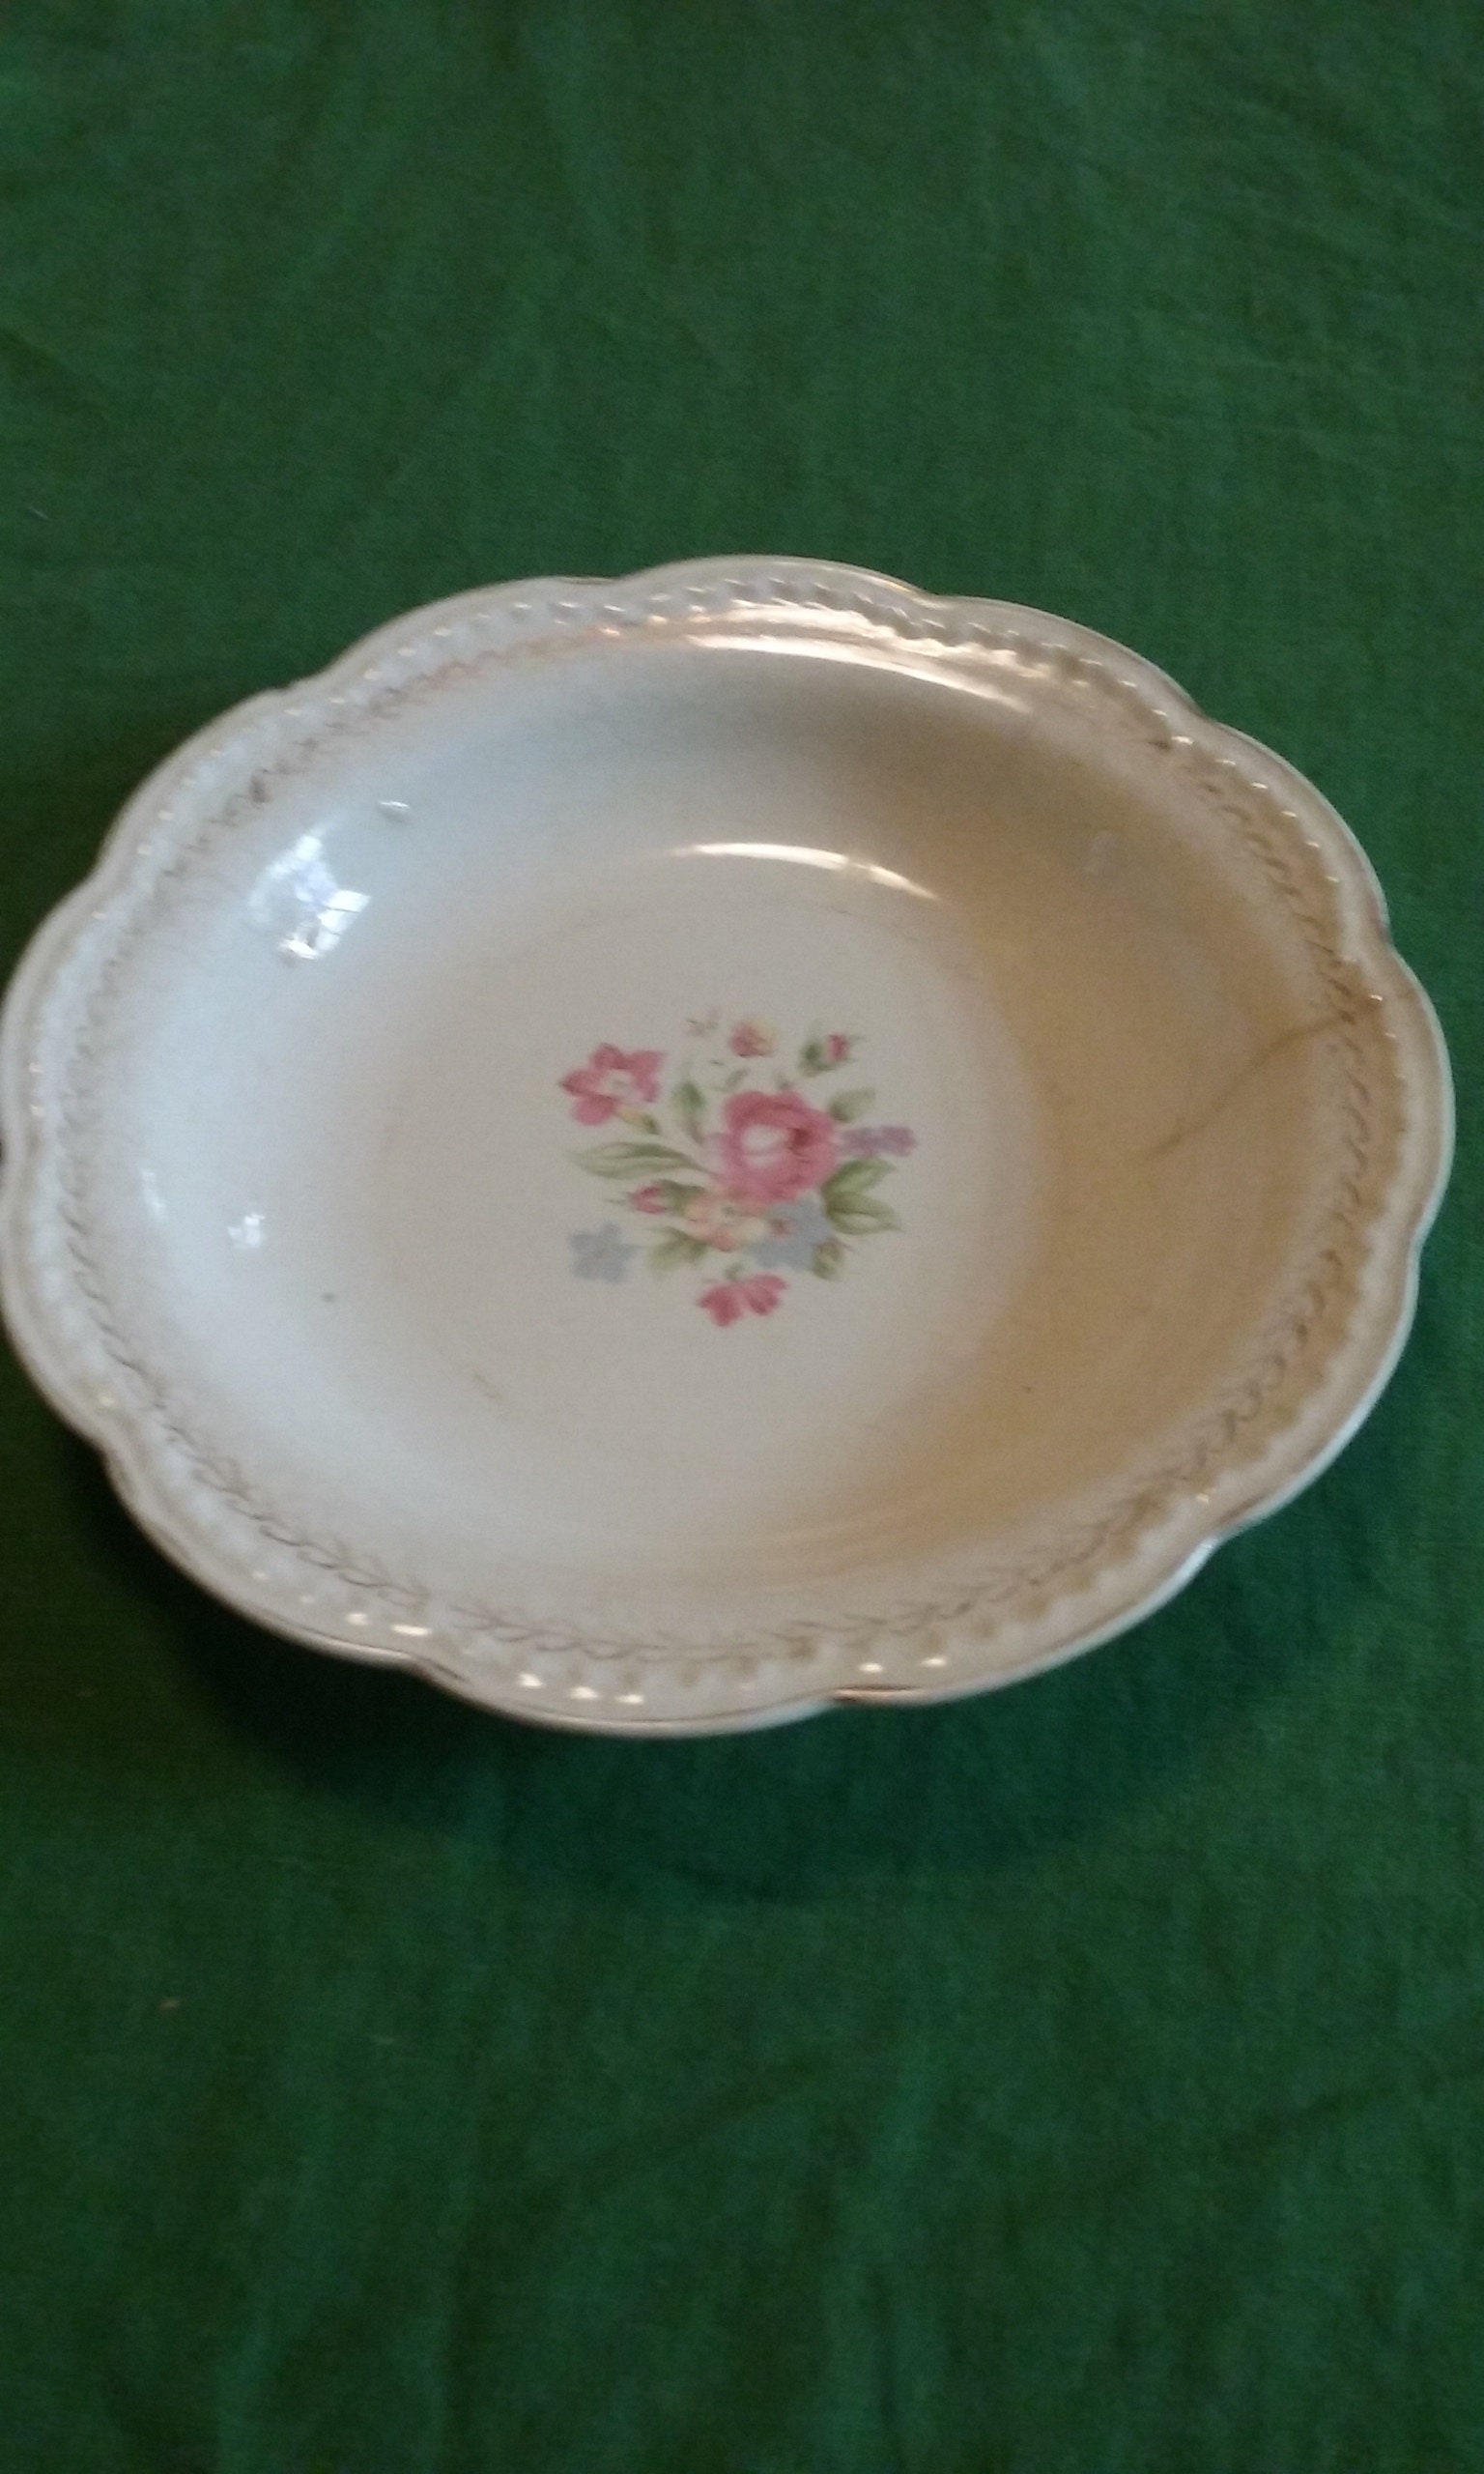 Vintage American Beauty By Stetson Bowl/22kt Gold/Made in